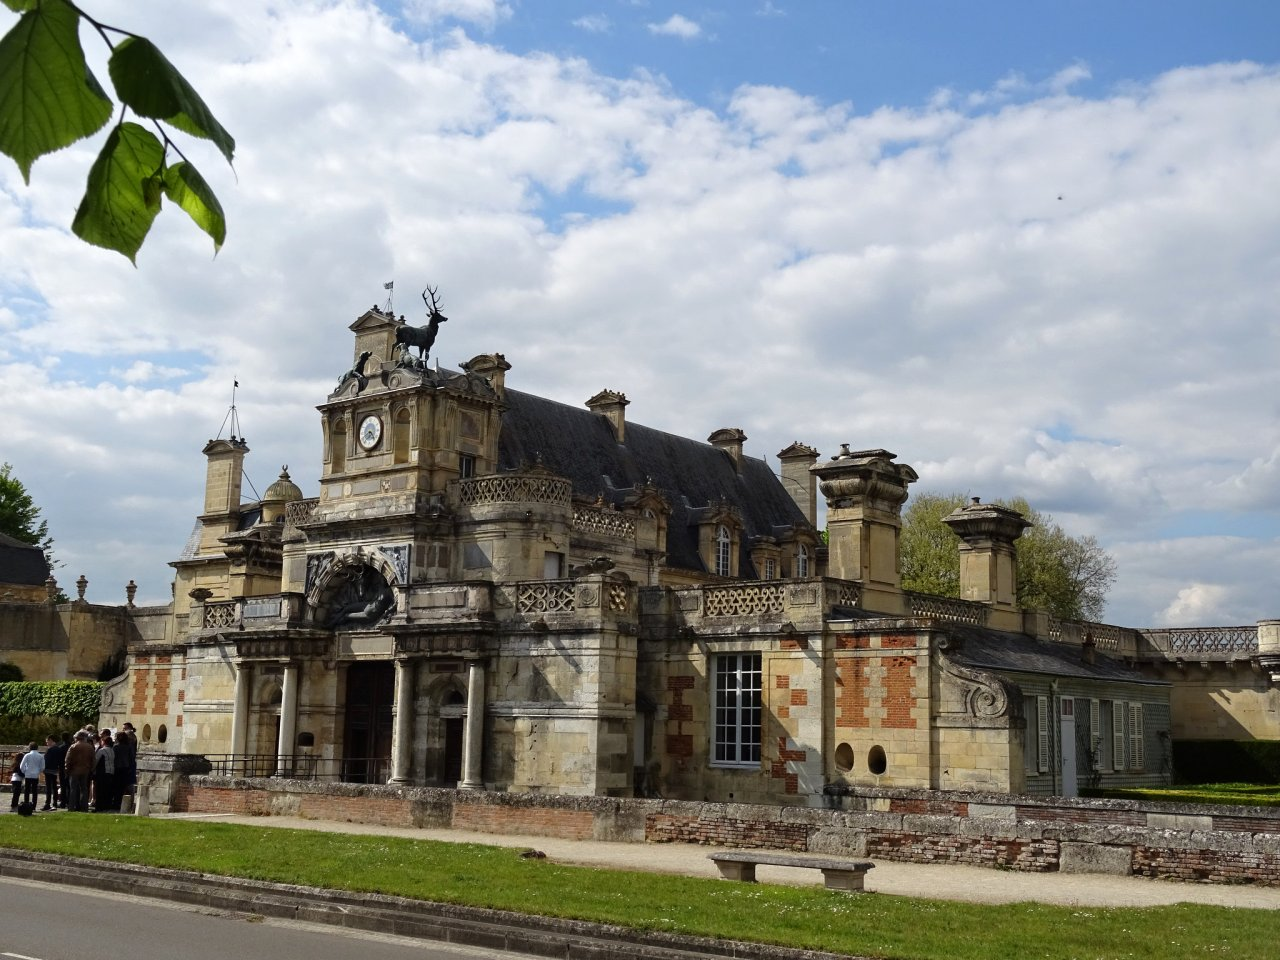 Anet, Castles in France